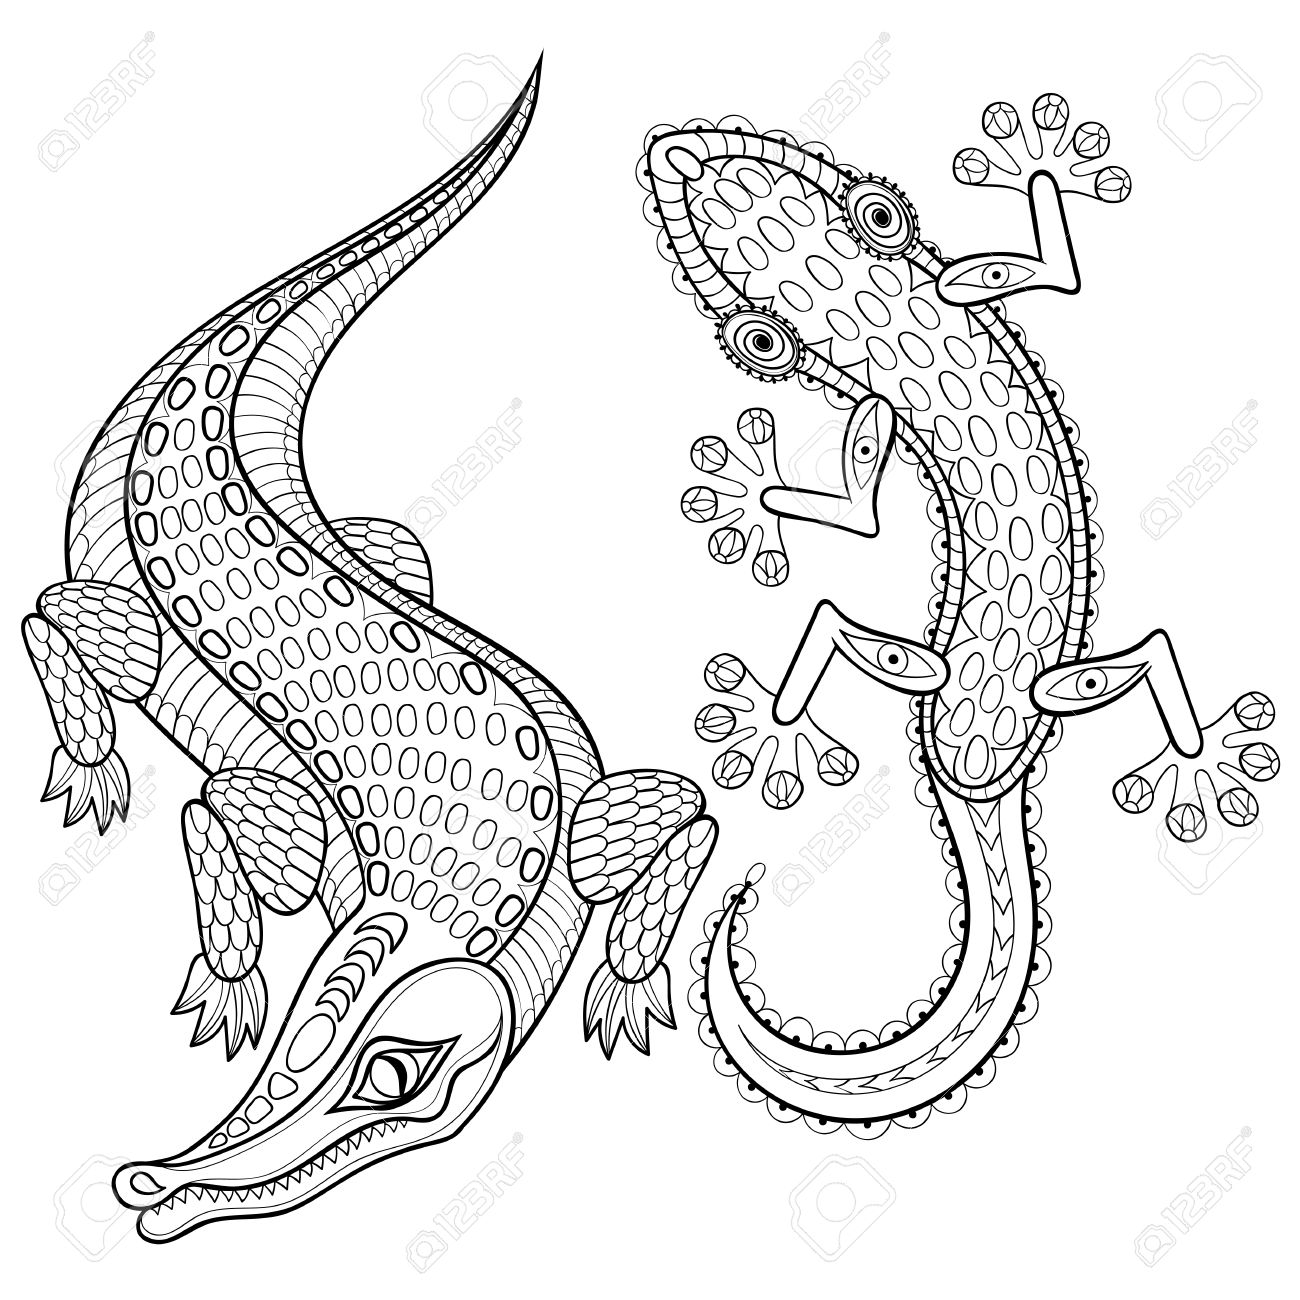 Hand Drawn Zentangled Crocodile And Lizard For Adult Coloring ...